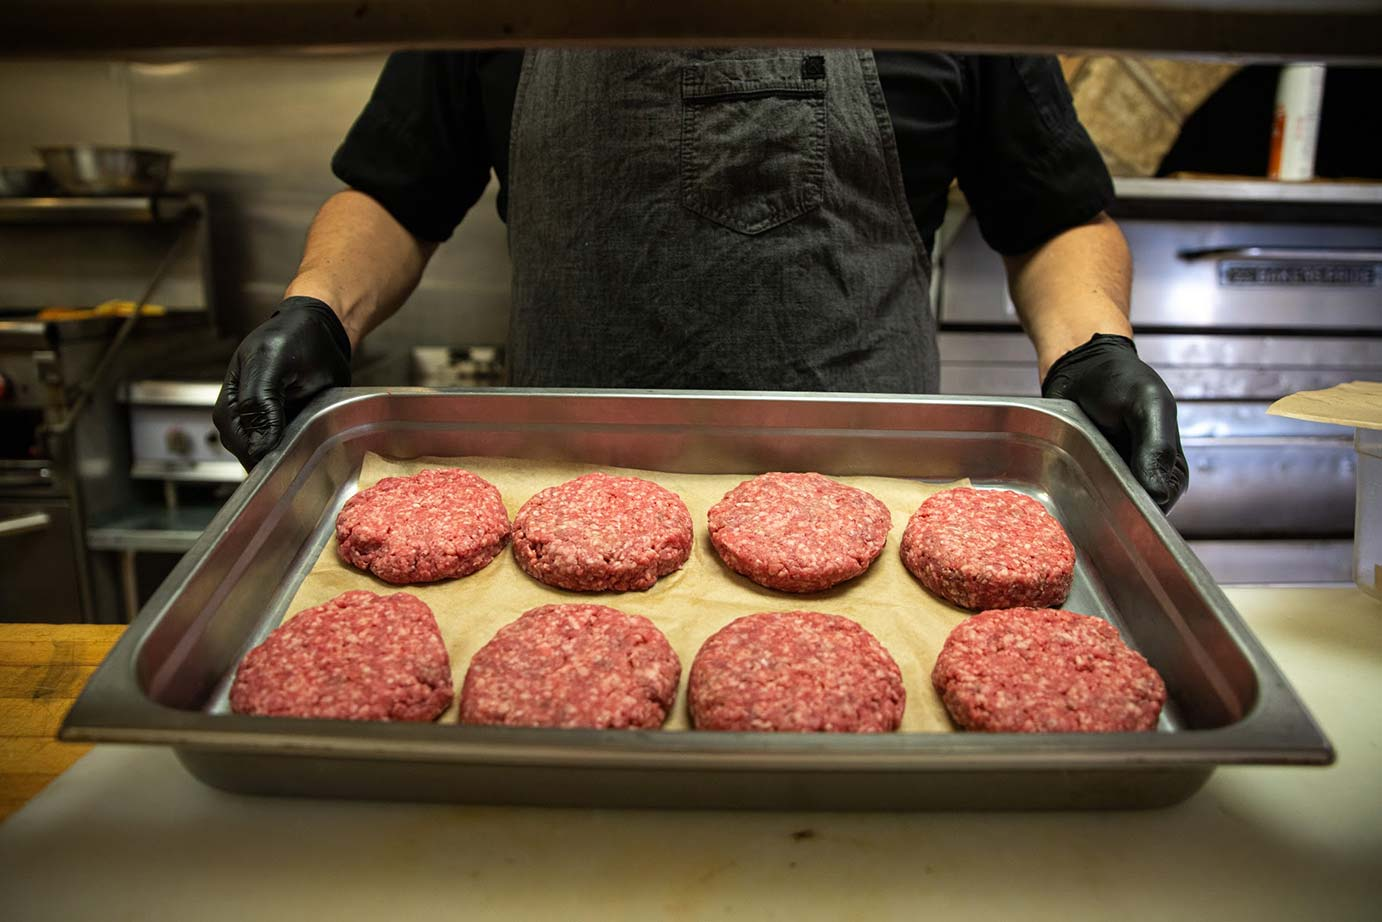 Raw burger meat